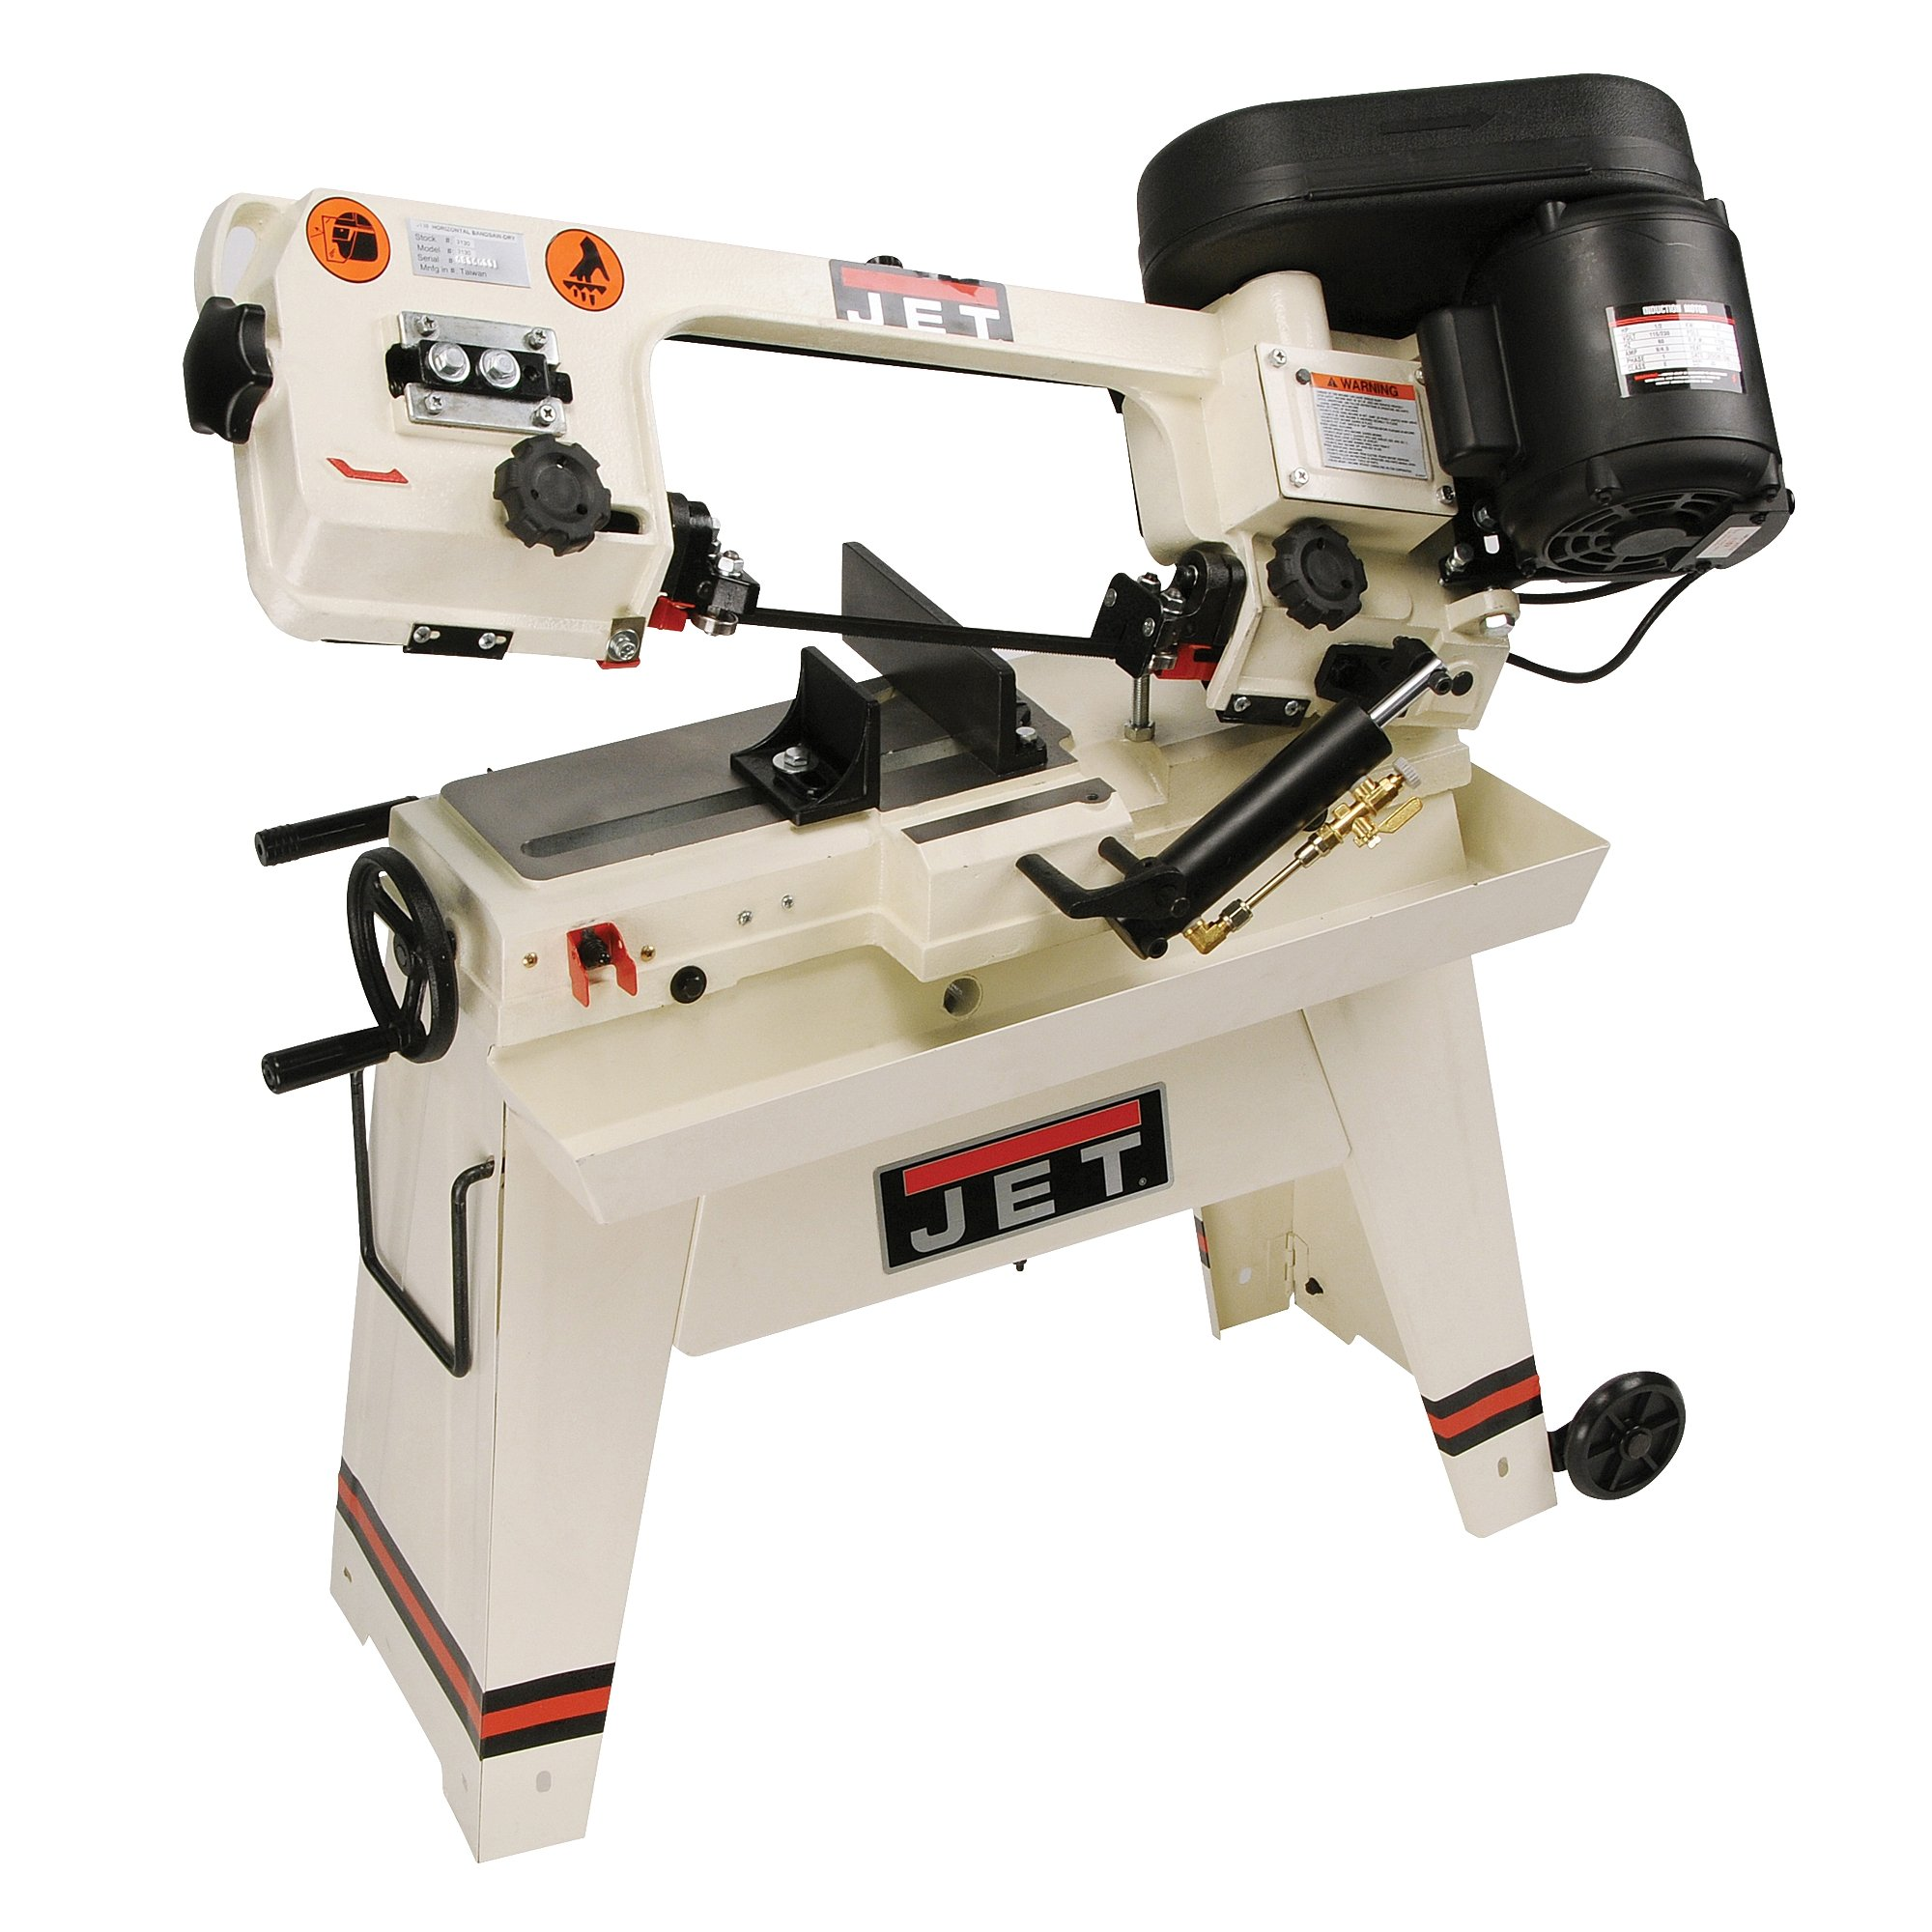 JET J-3130 5-Inch by 8-Inch 1/2-Horsepower 115-Volt Single Phase Horizontal Dry Bandsaw by Jet